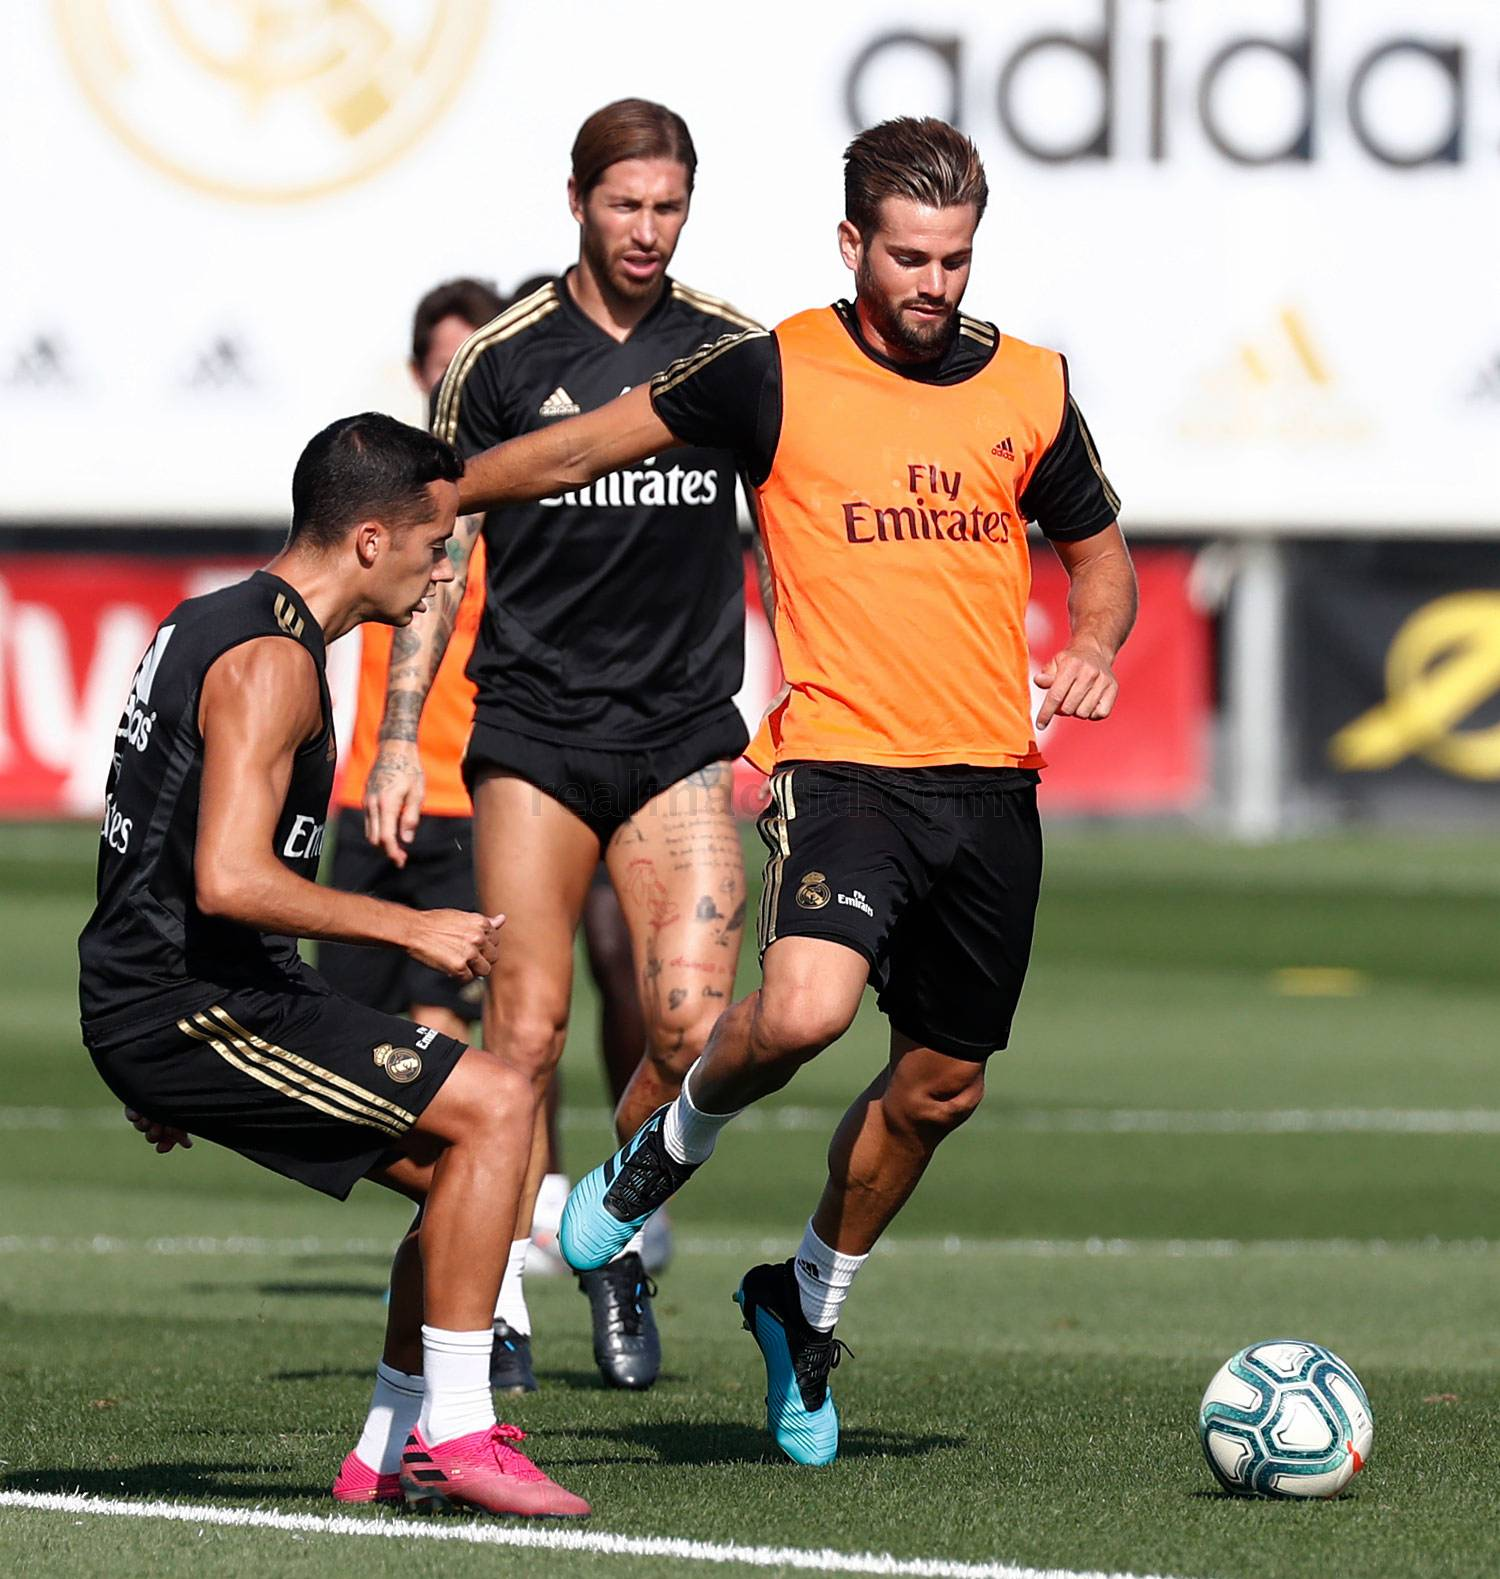 Real Madrid - Entrenamiento del Real Madrid  - 27-08-2019